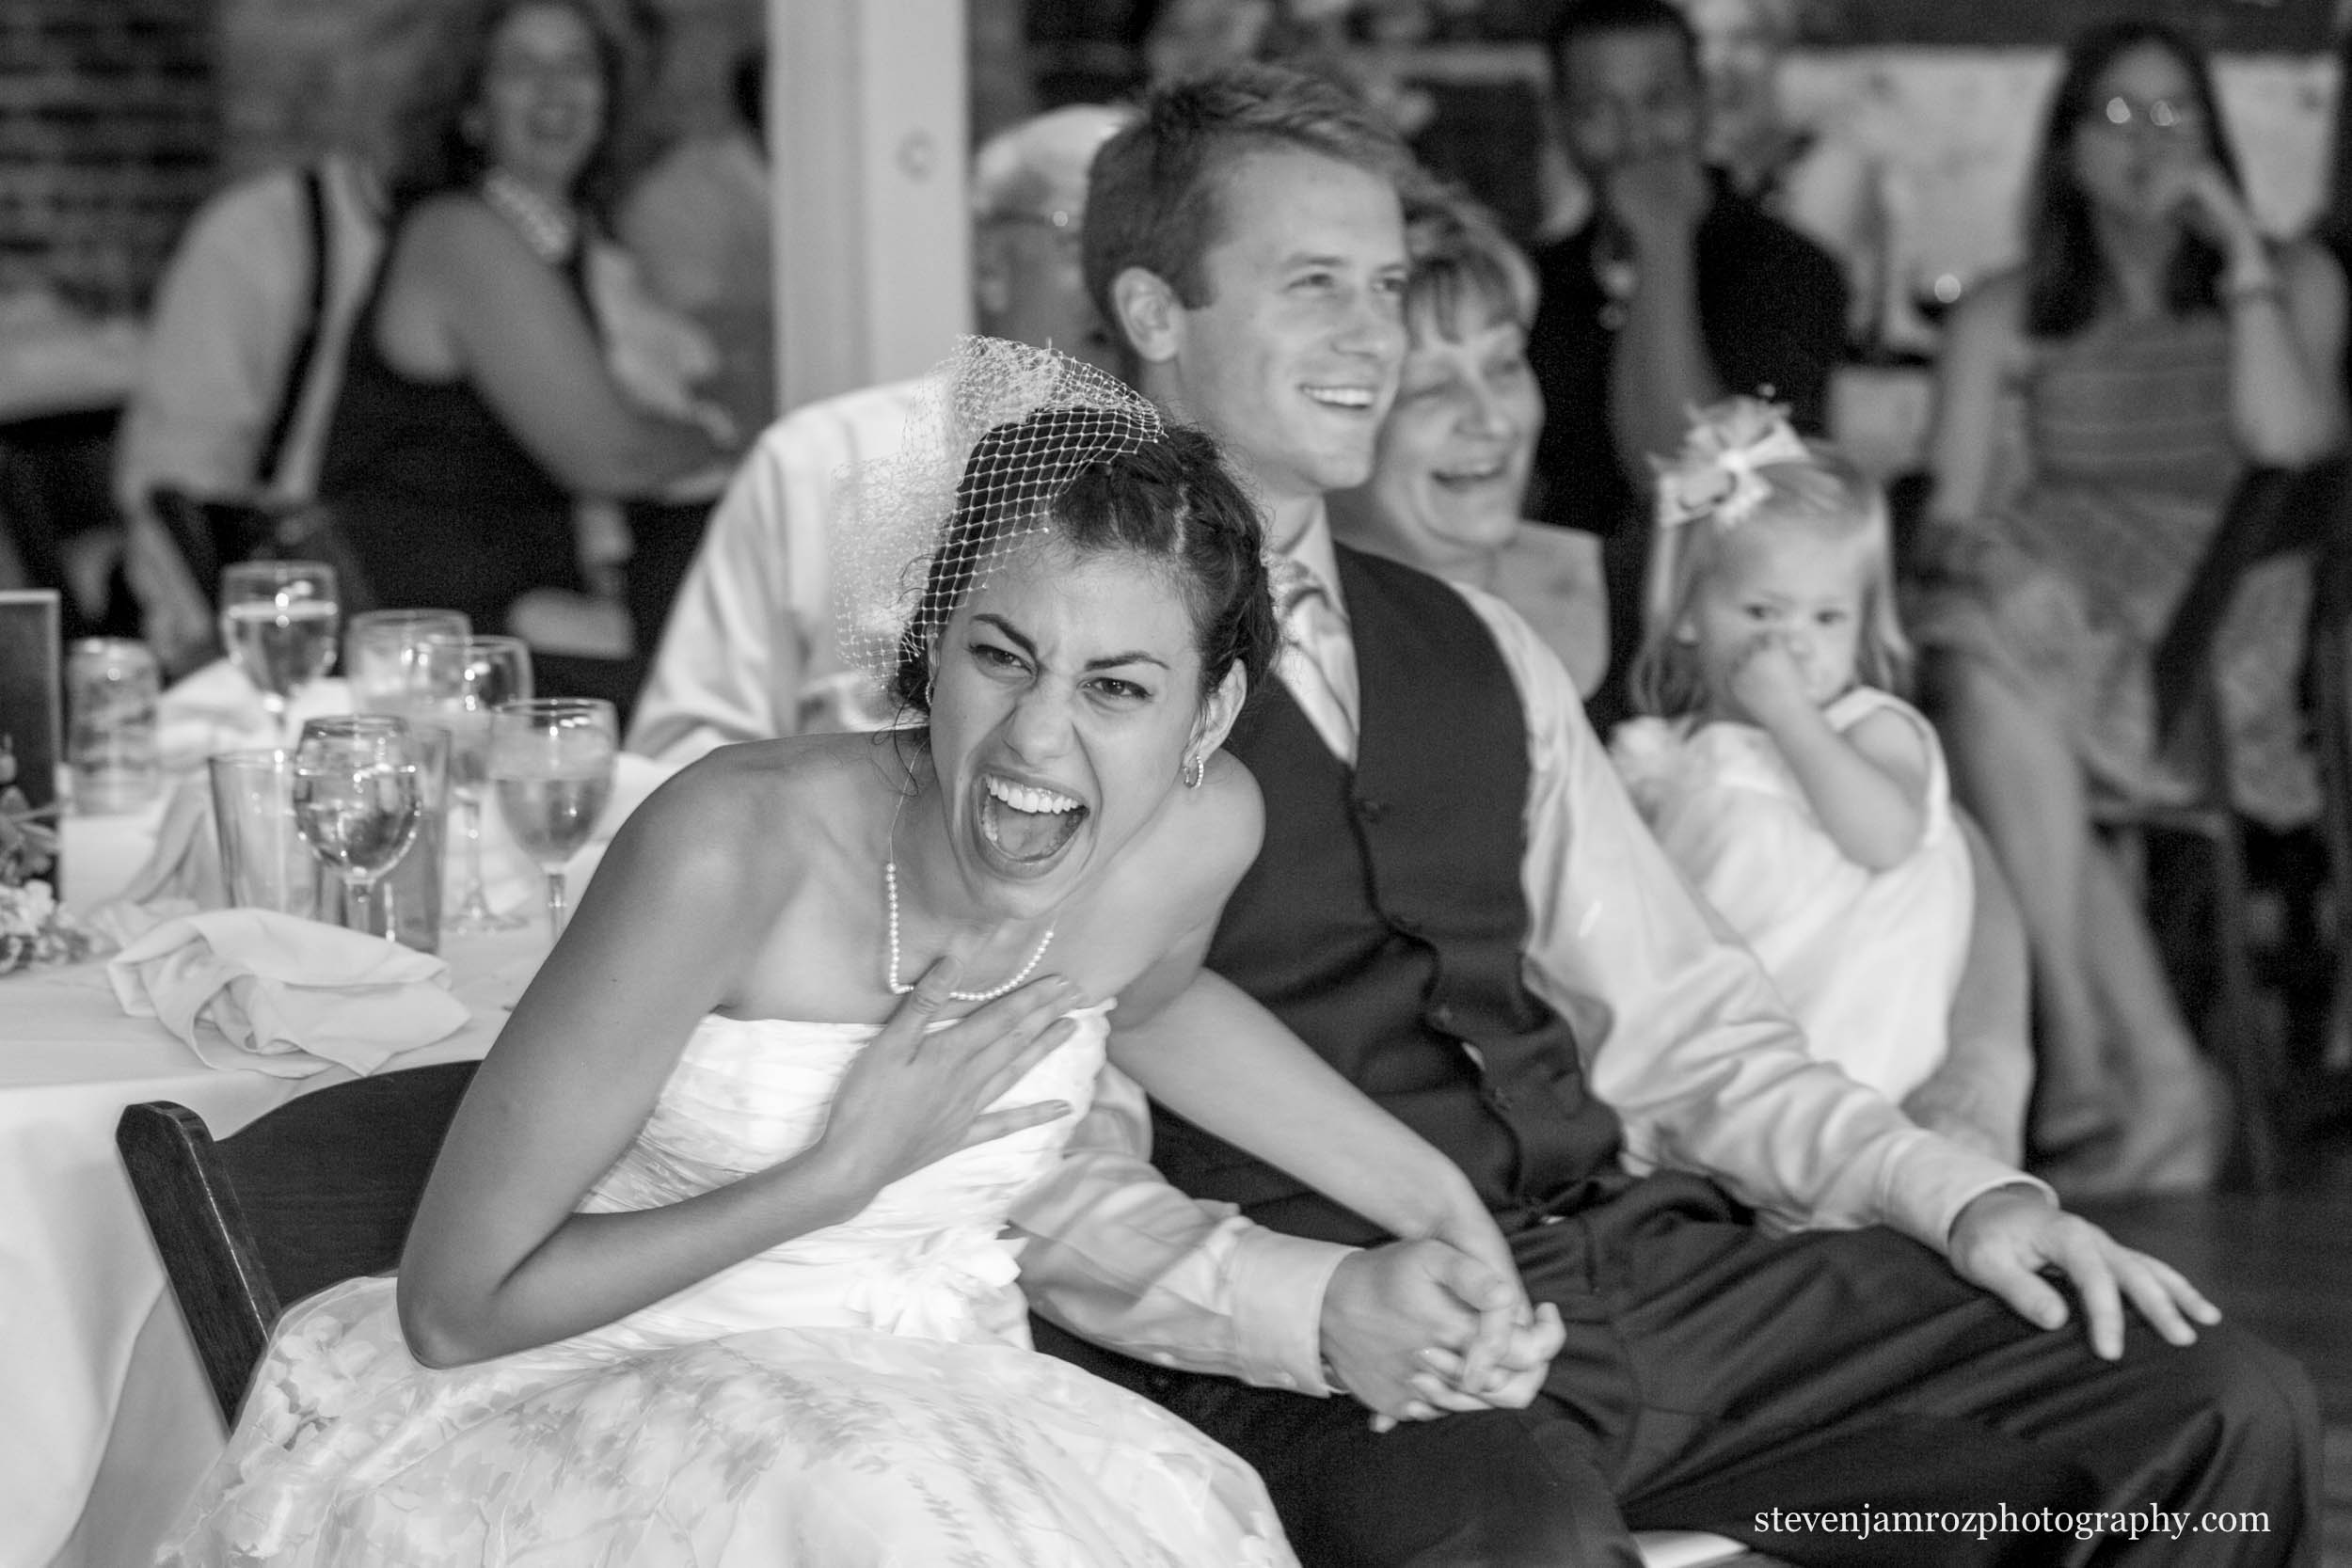 reception-reactions-bride-raleigh-steven-jamroz-photography-0296.jpg